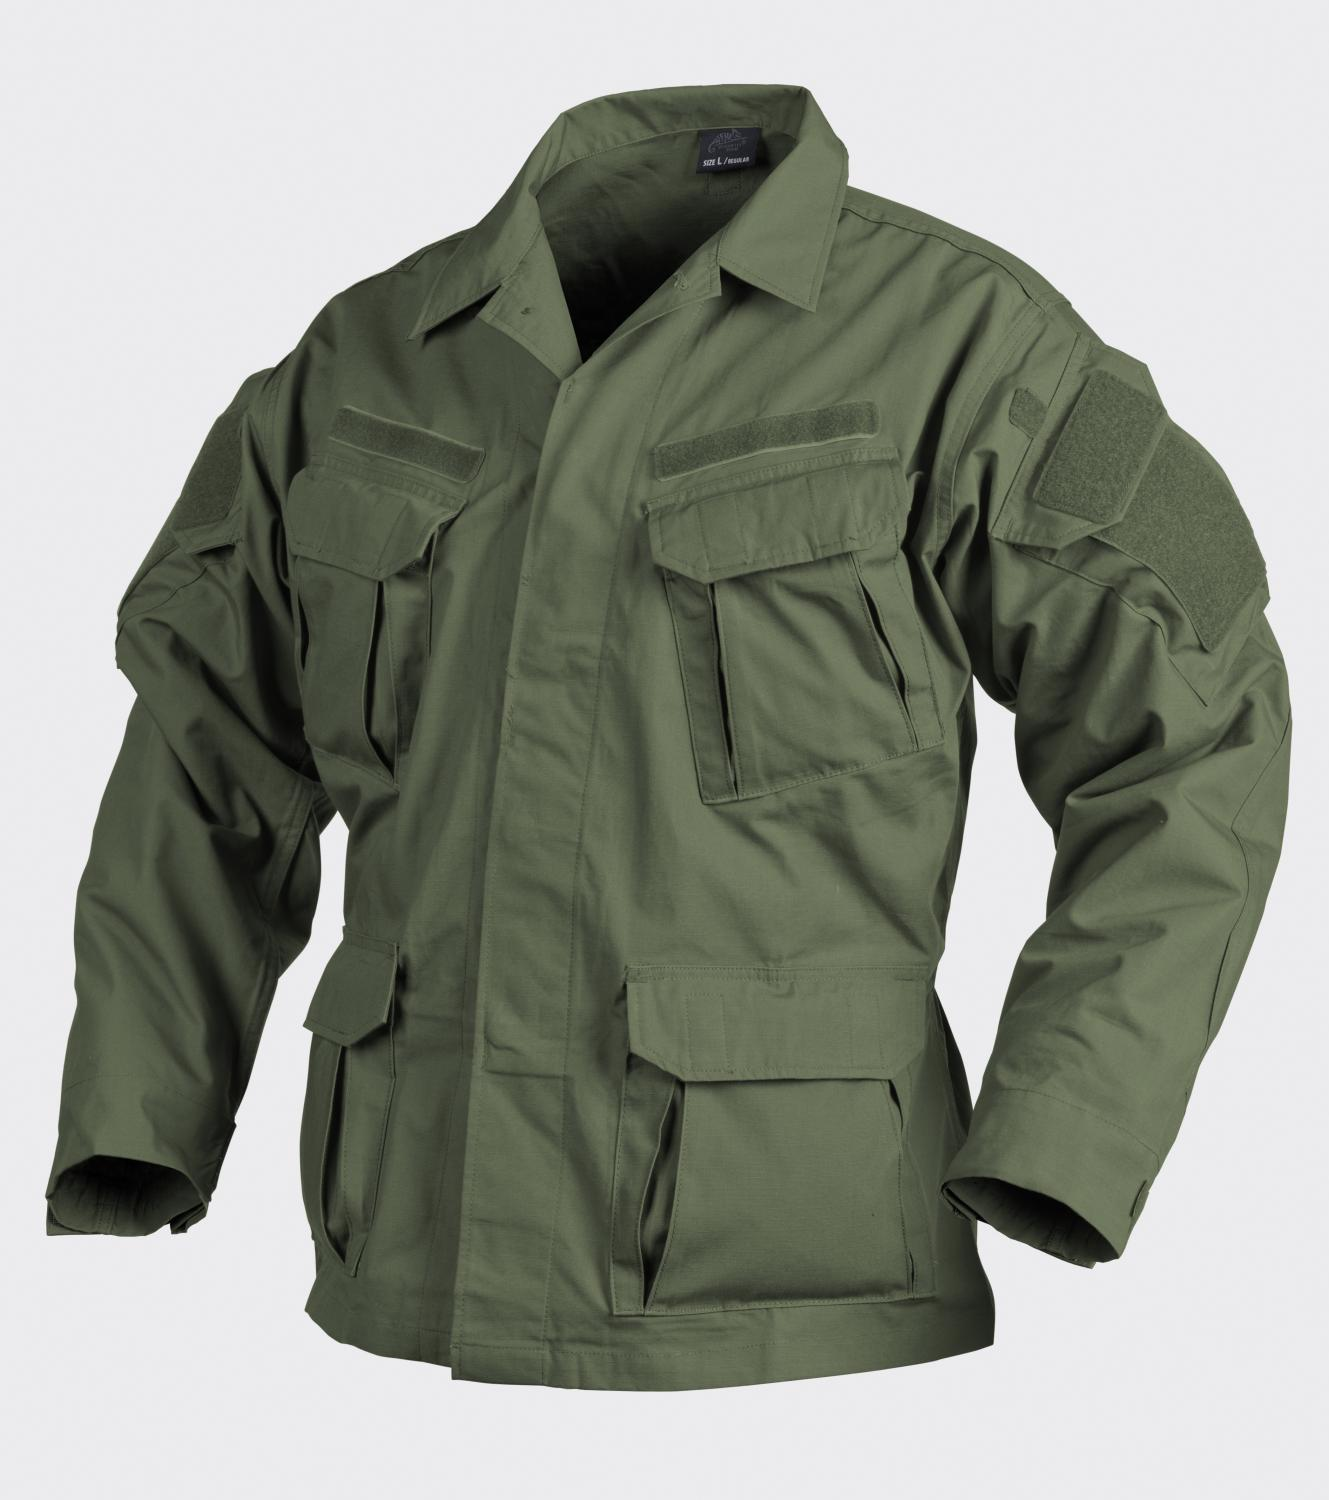 SFU (Special Forces Uniform) NEXT® - PolyCotton Ripstop Olive Green